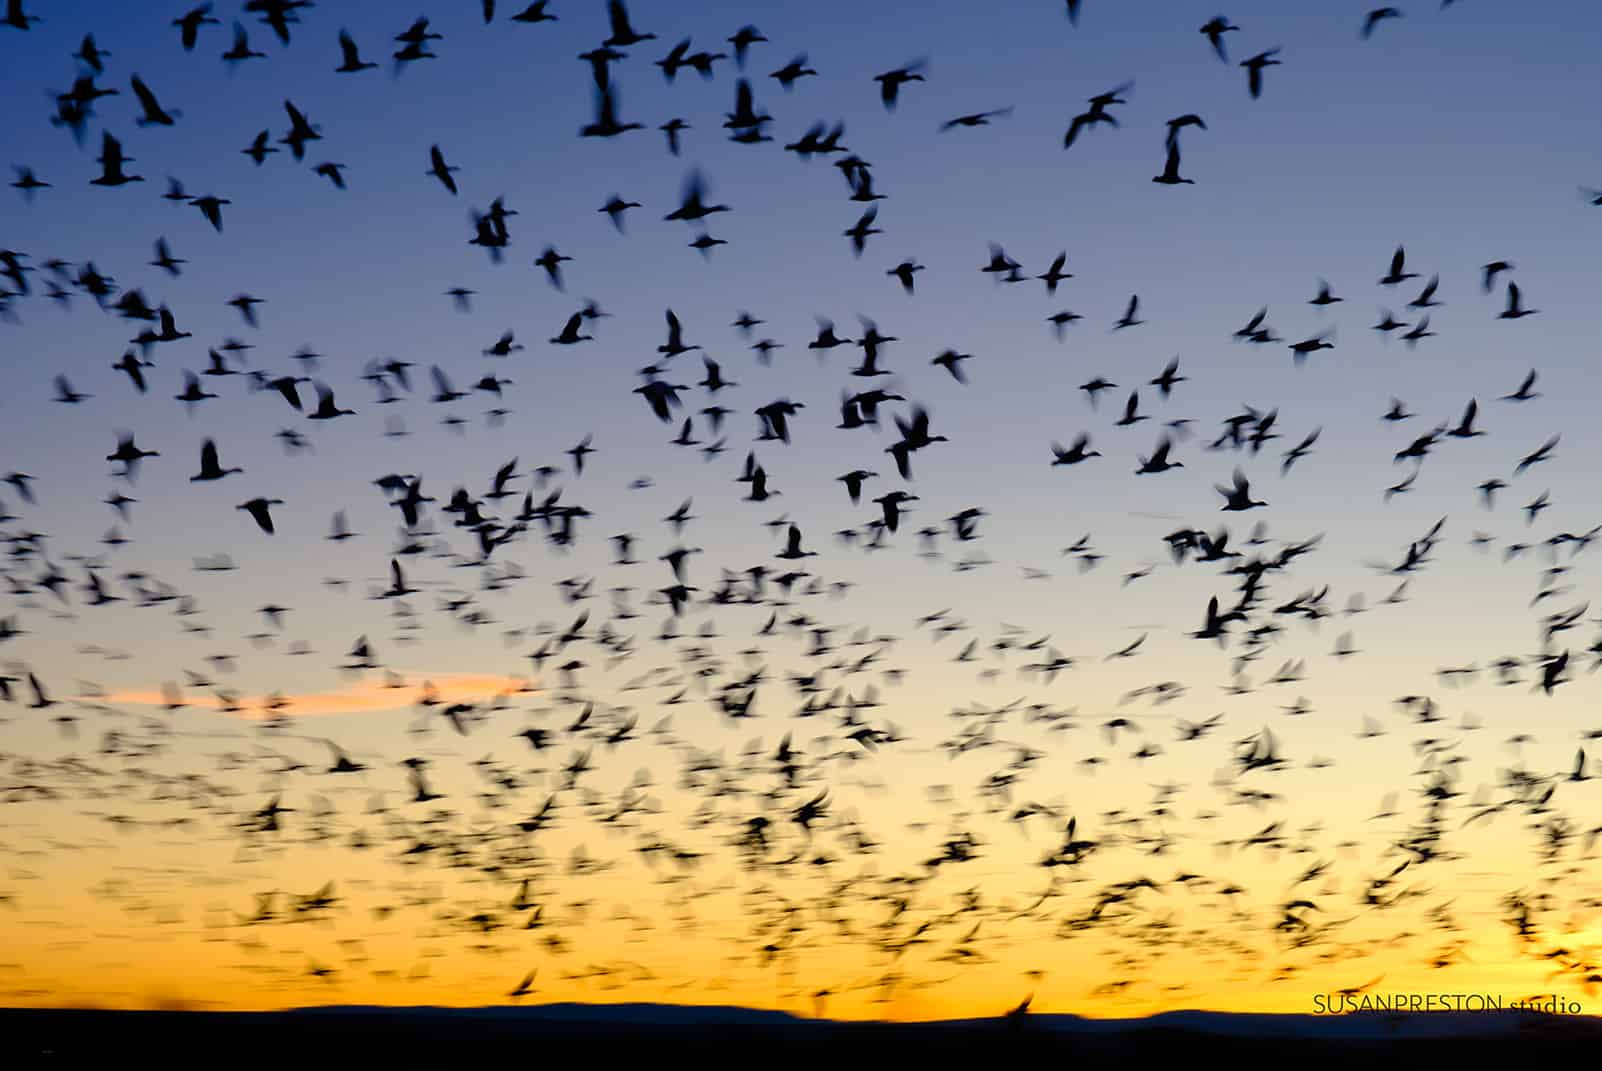 snow geese waking with the dawn